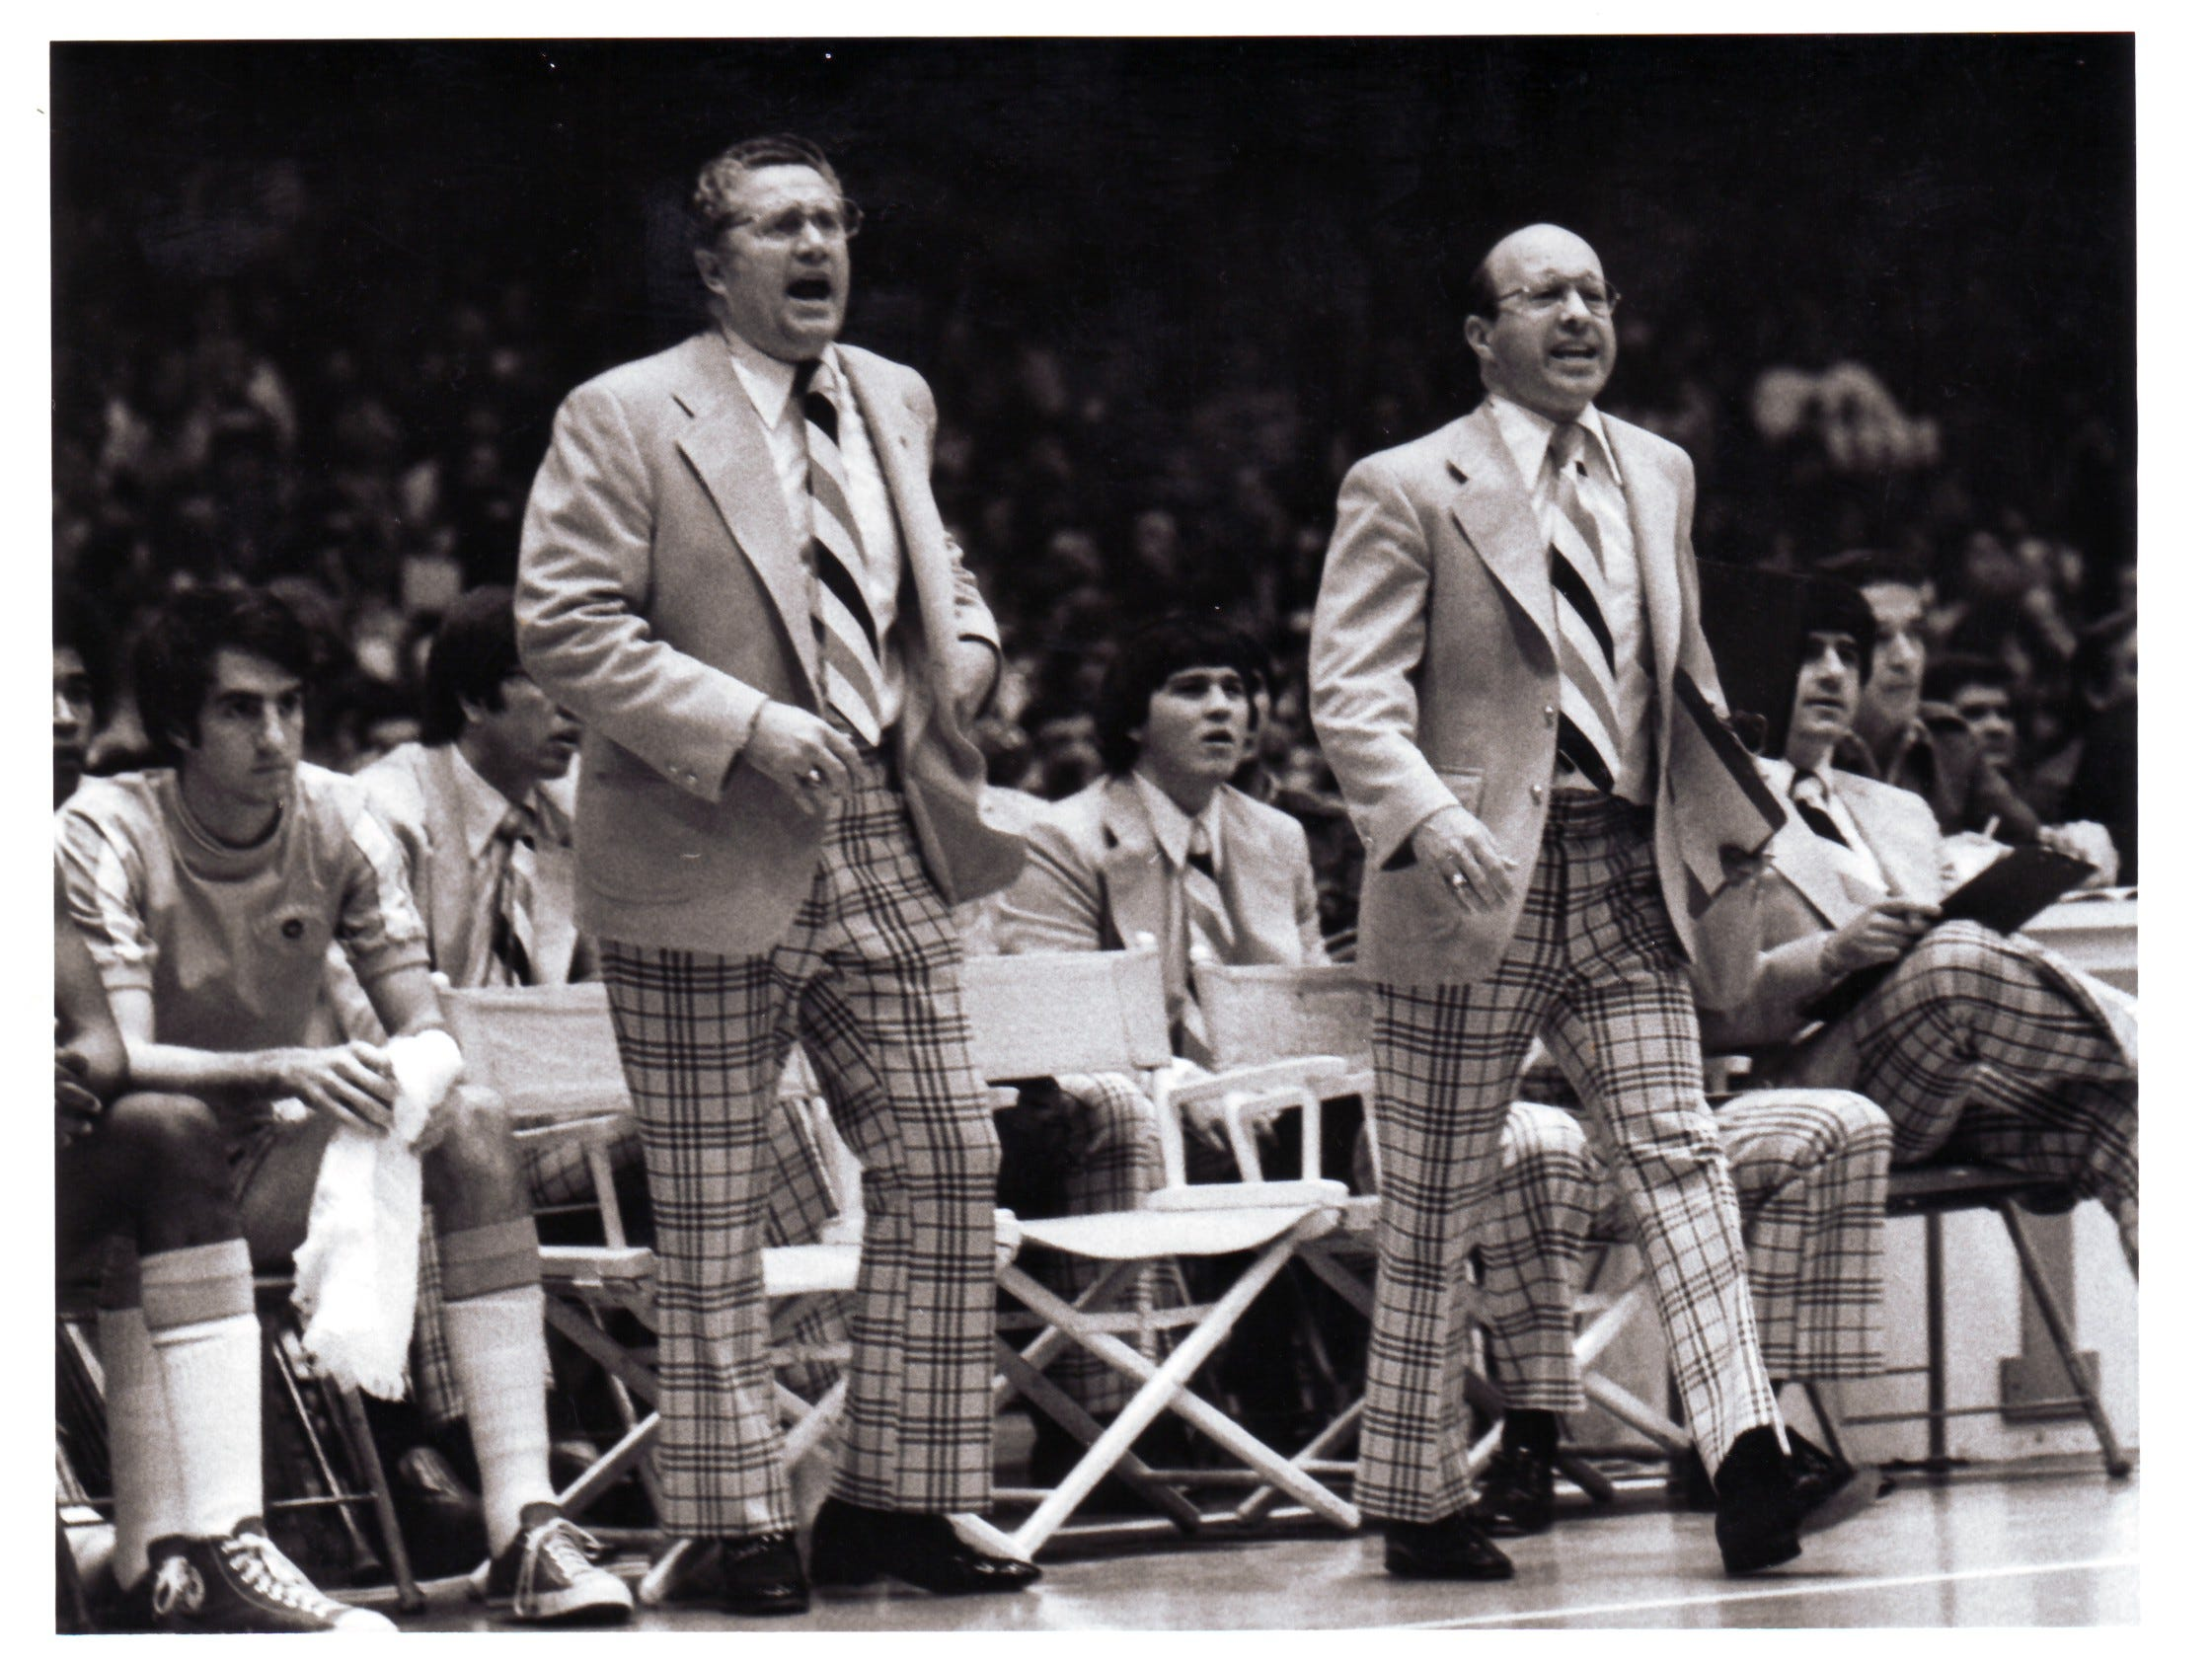 University of Tennessee basketball Coach Ray Mears, left, and Assistant Coach Stu Aberdeen are pictured in a 1976 photograph. Mears died at age 80 on June 11, 2007.